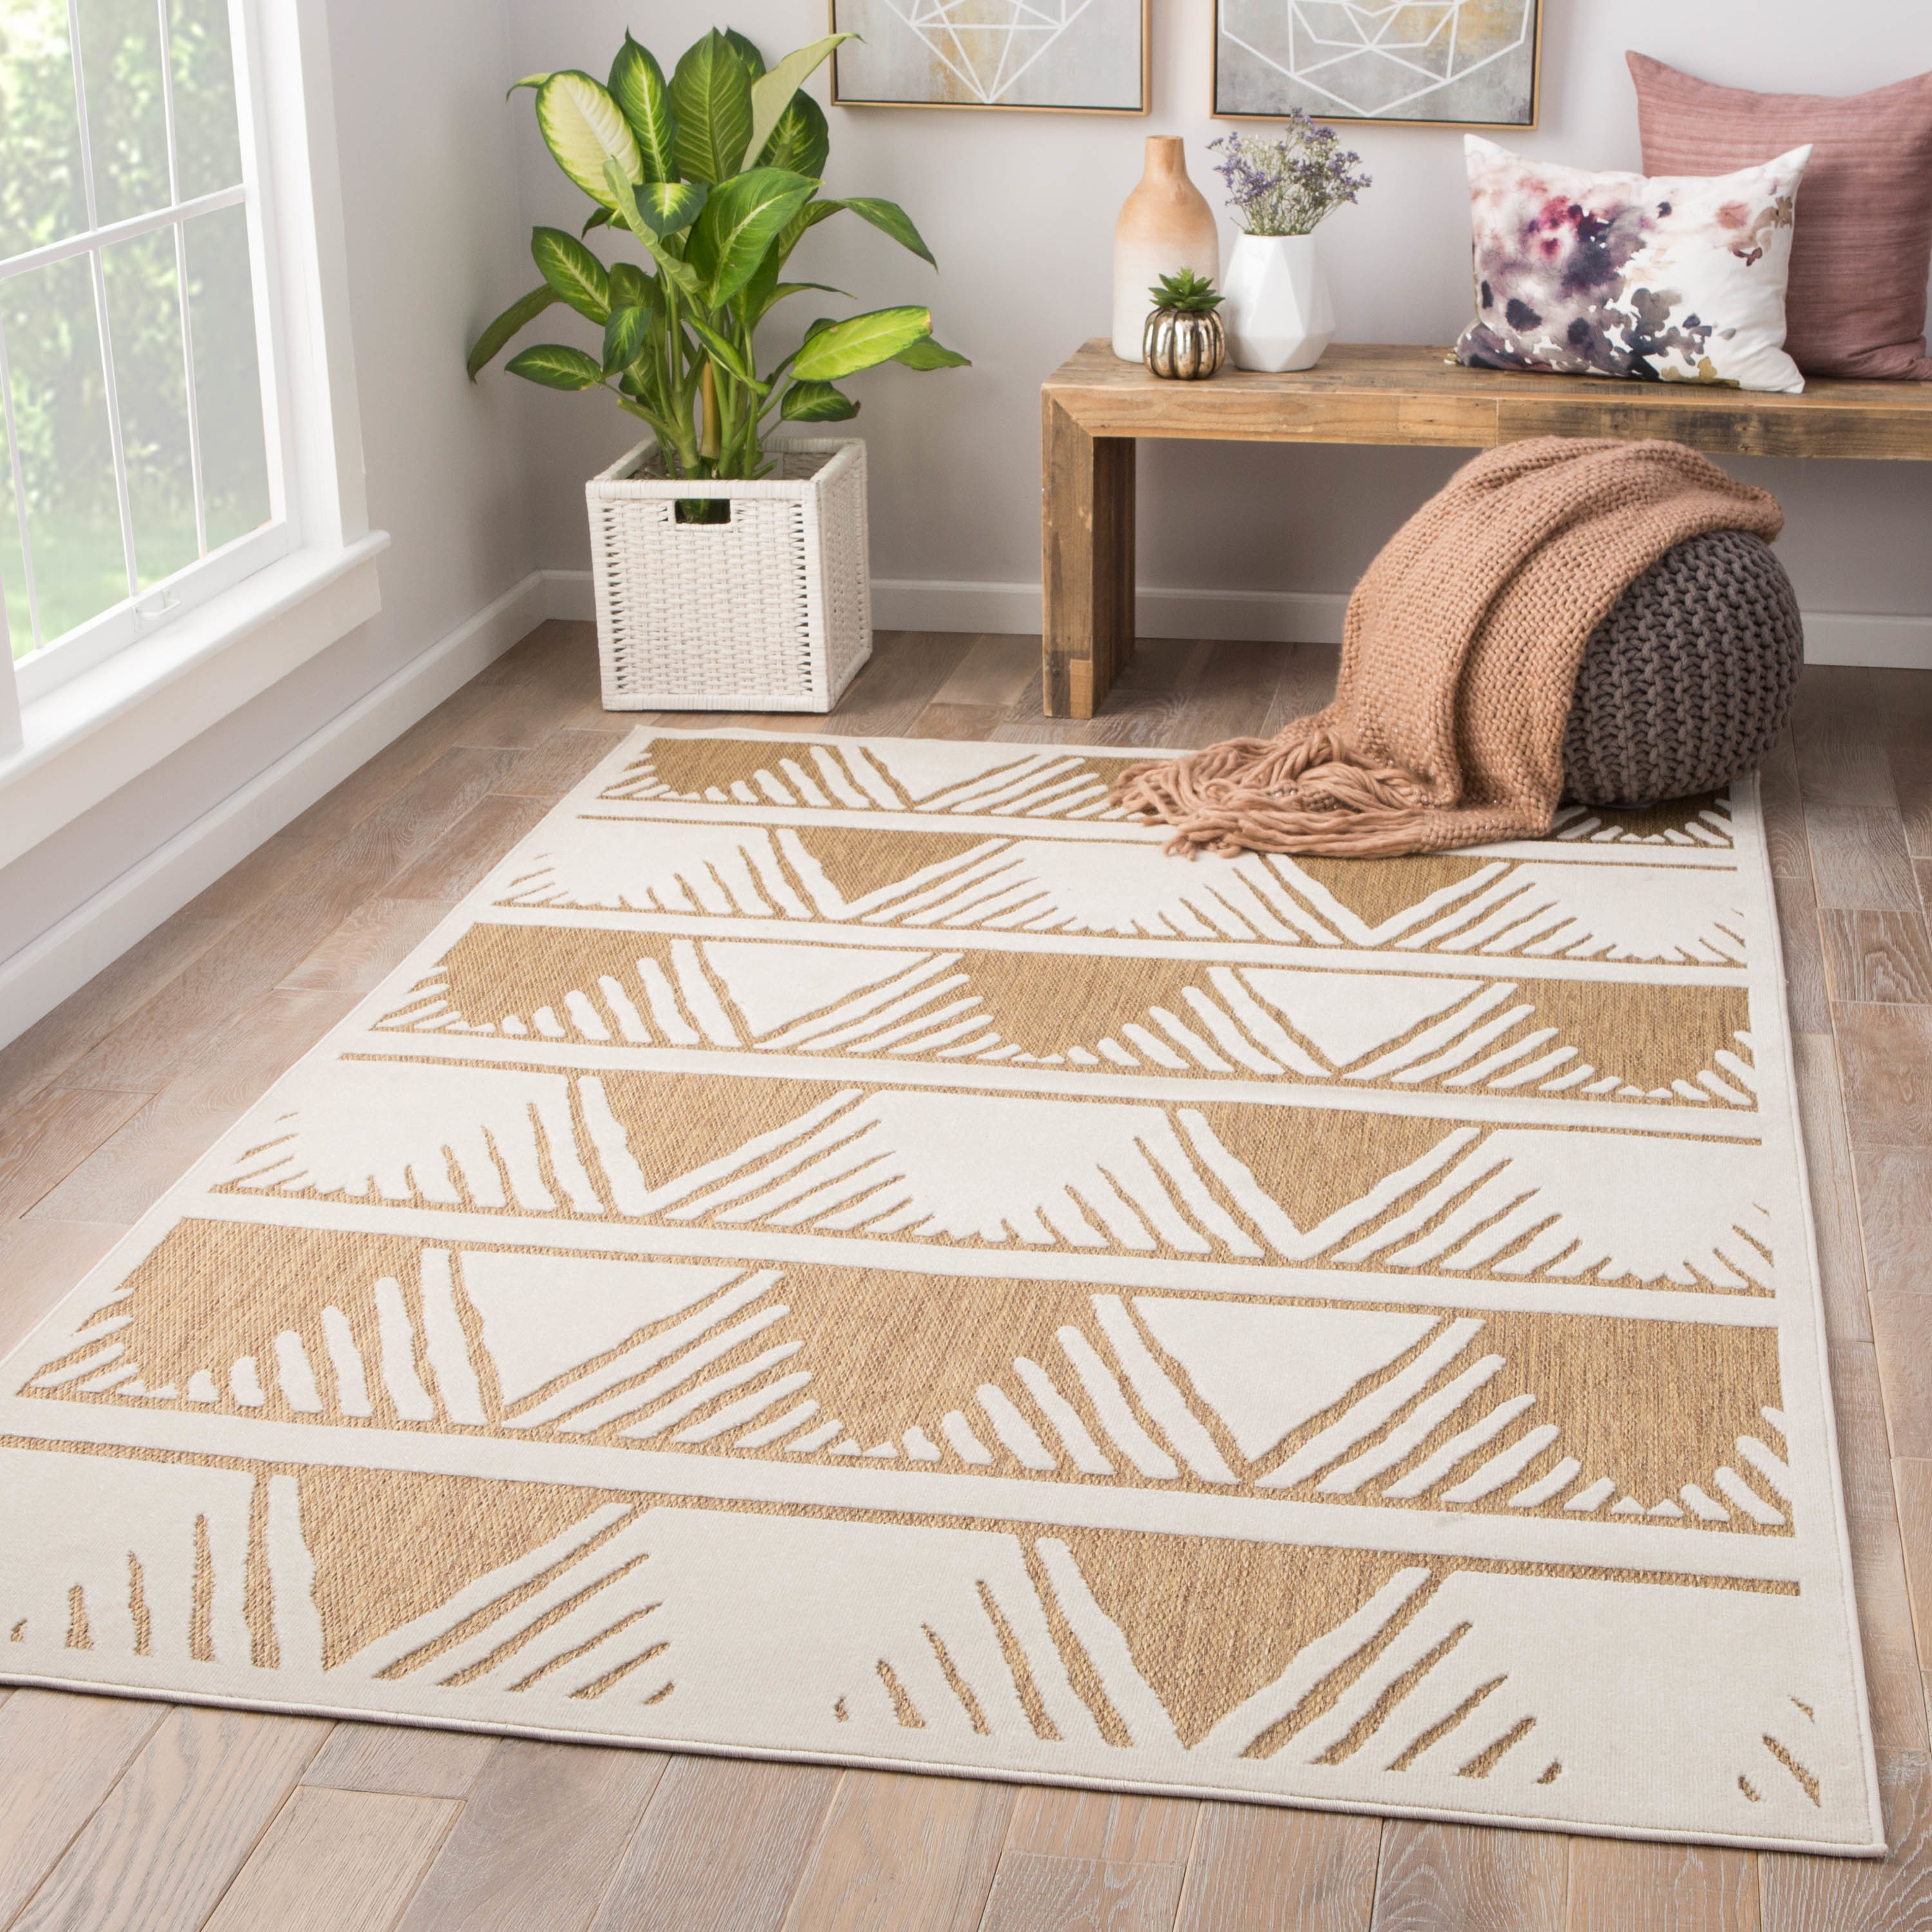 amazon com pure highest grey shag interior rug home beach collection moroccan rugs beige imagination white and safavieh south ivory